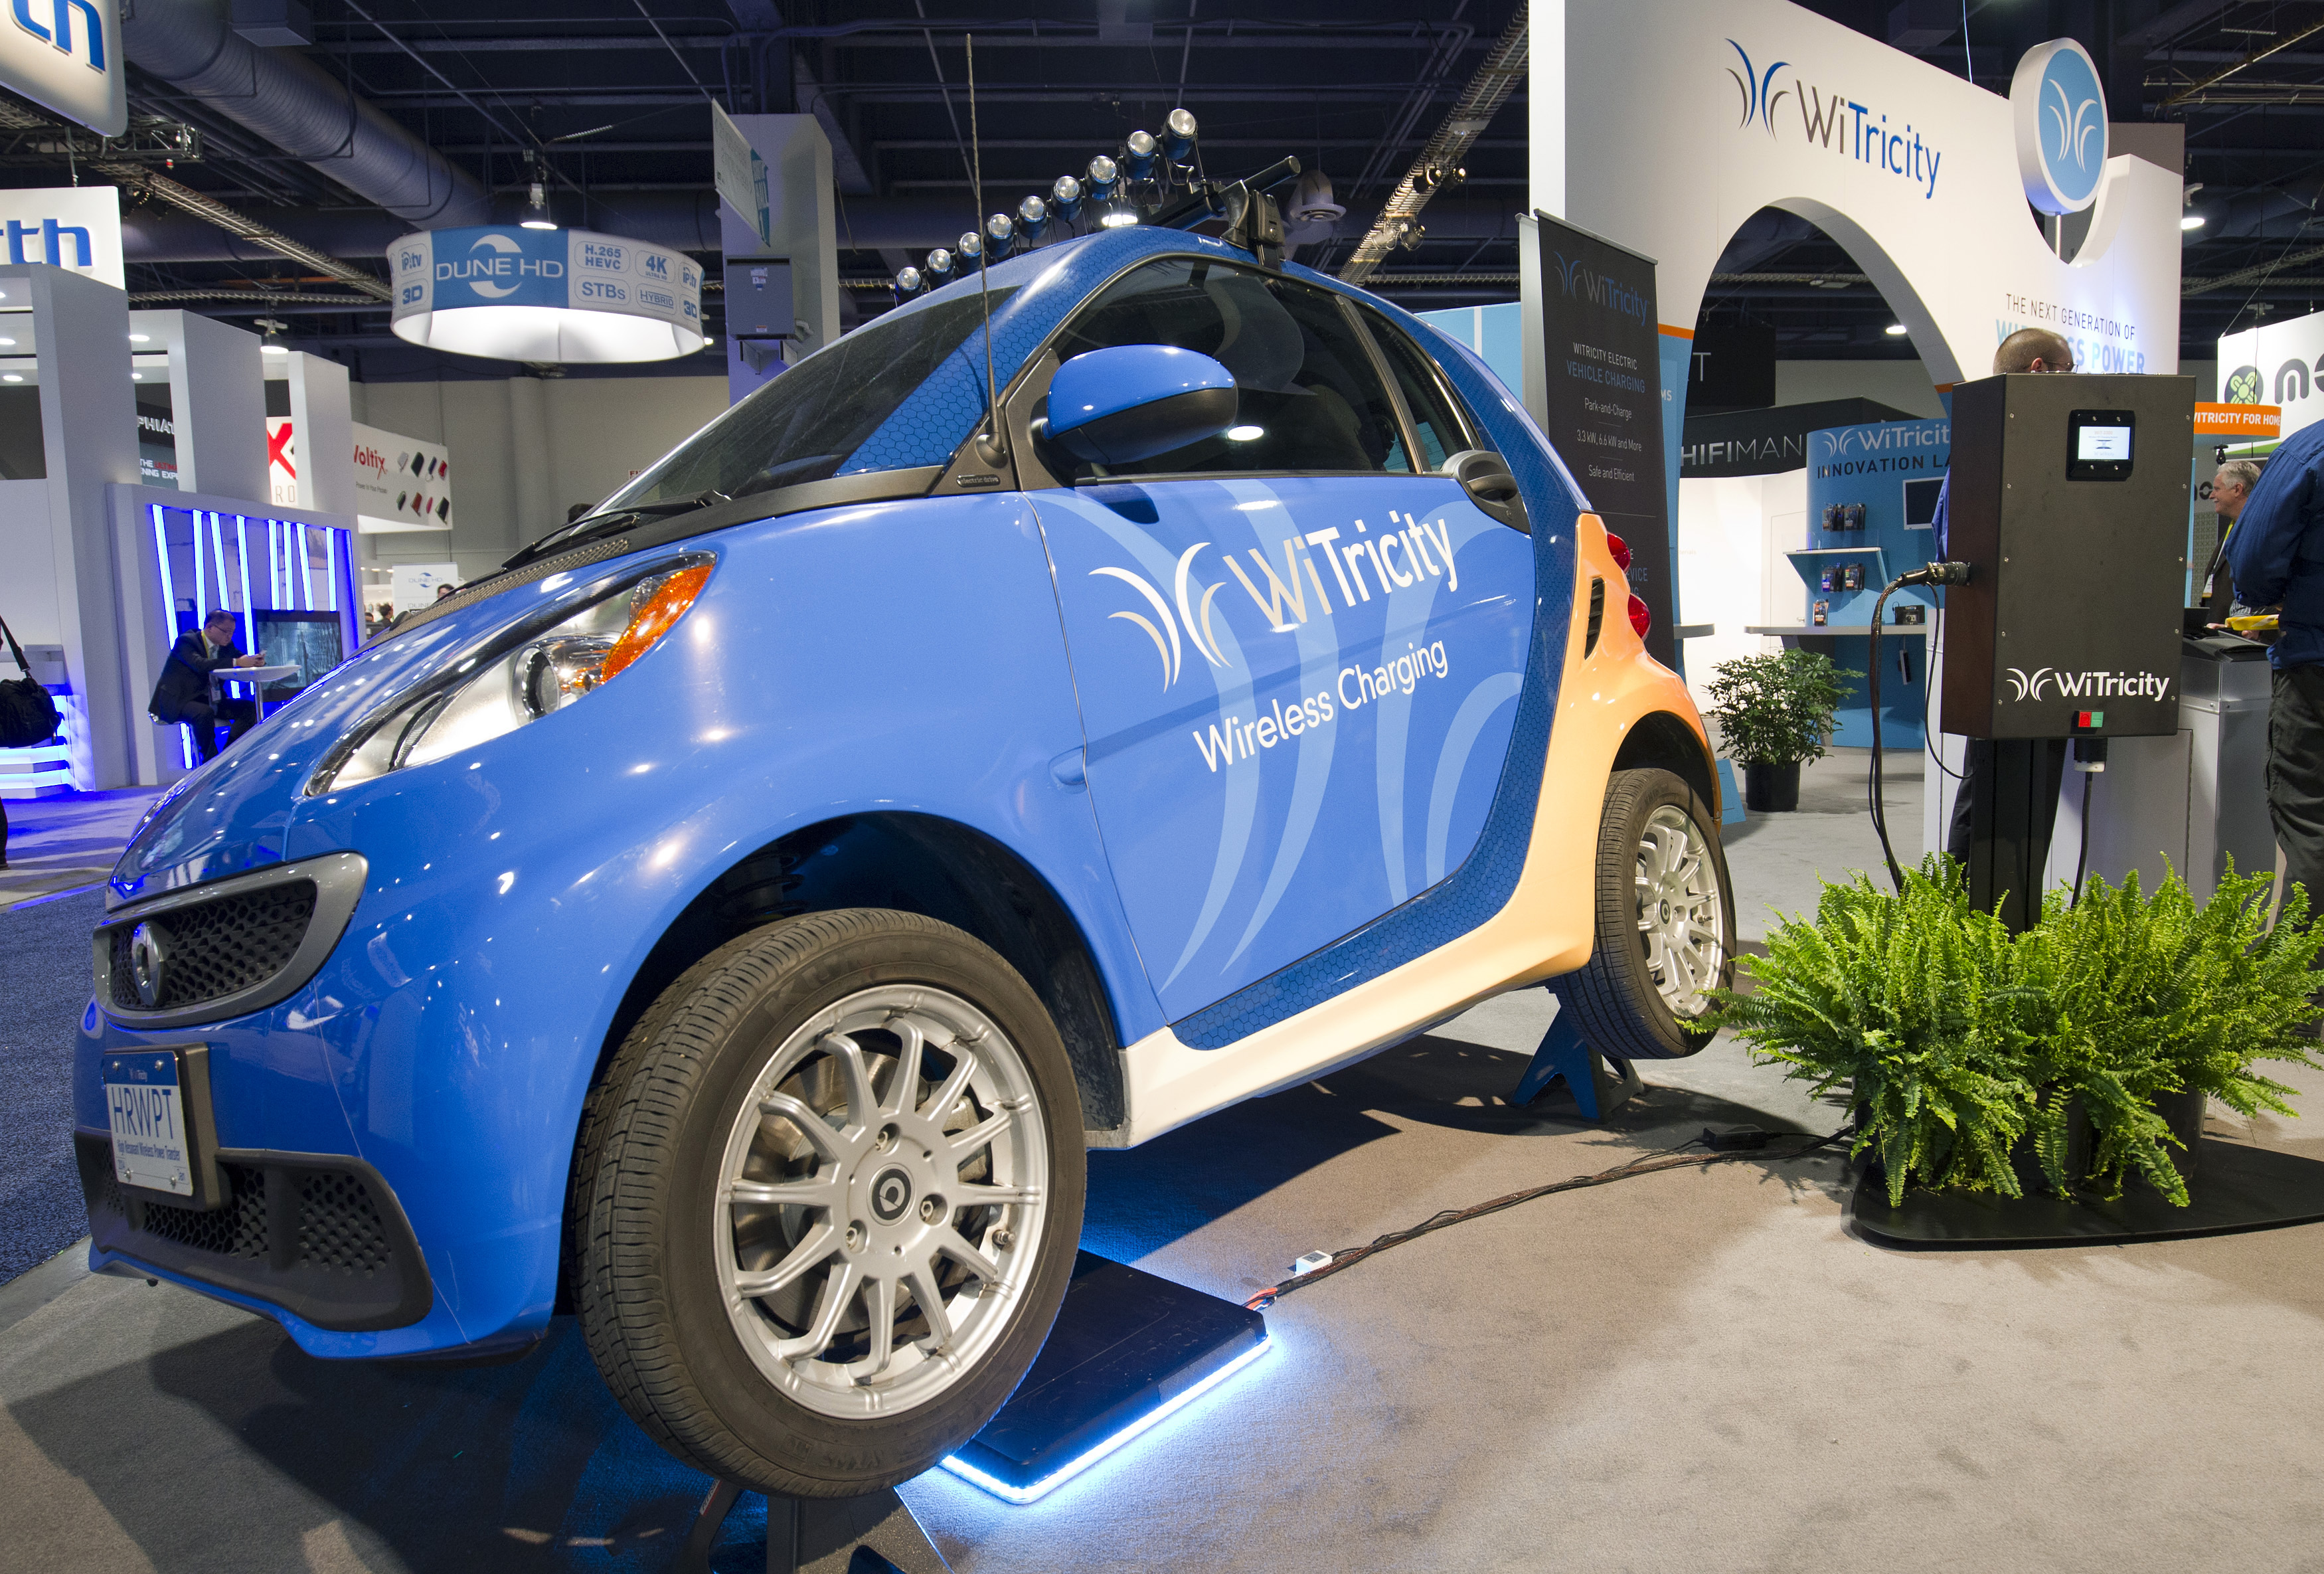 CES 2016: What to expect at the Consumer Electronics Show in Las Vegas